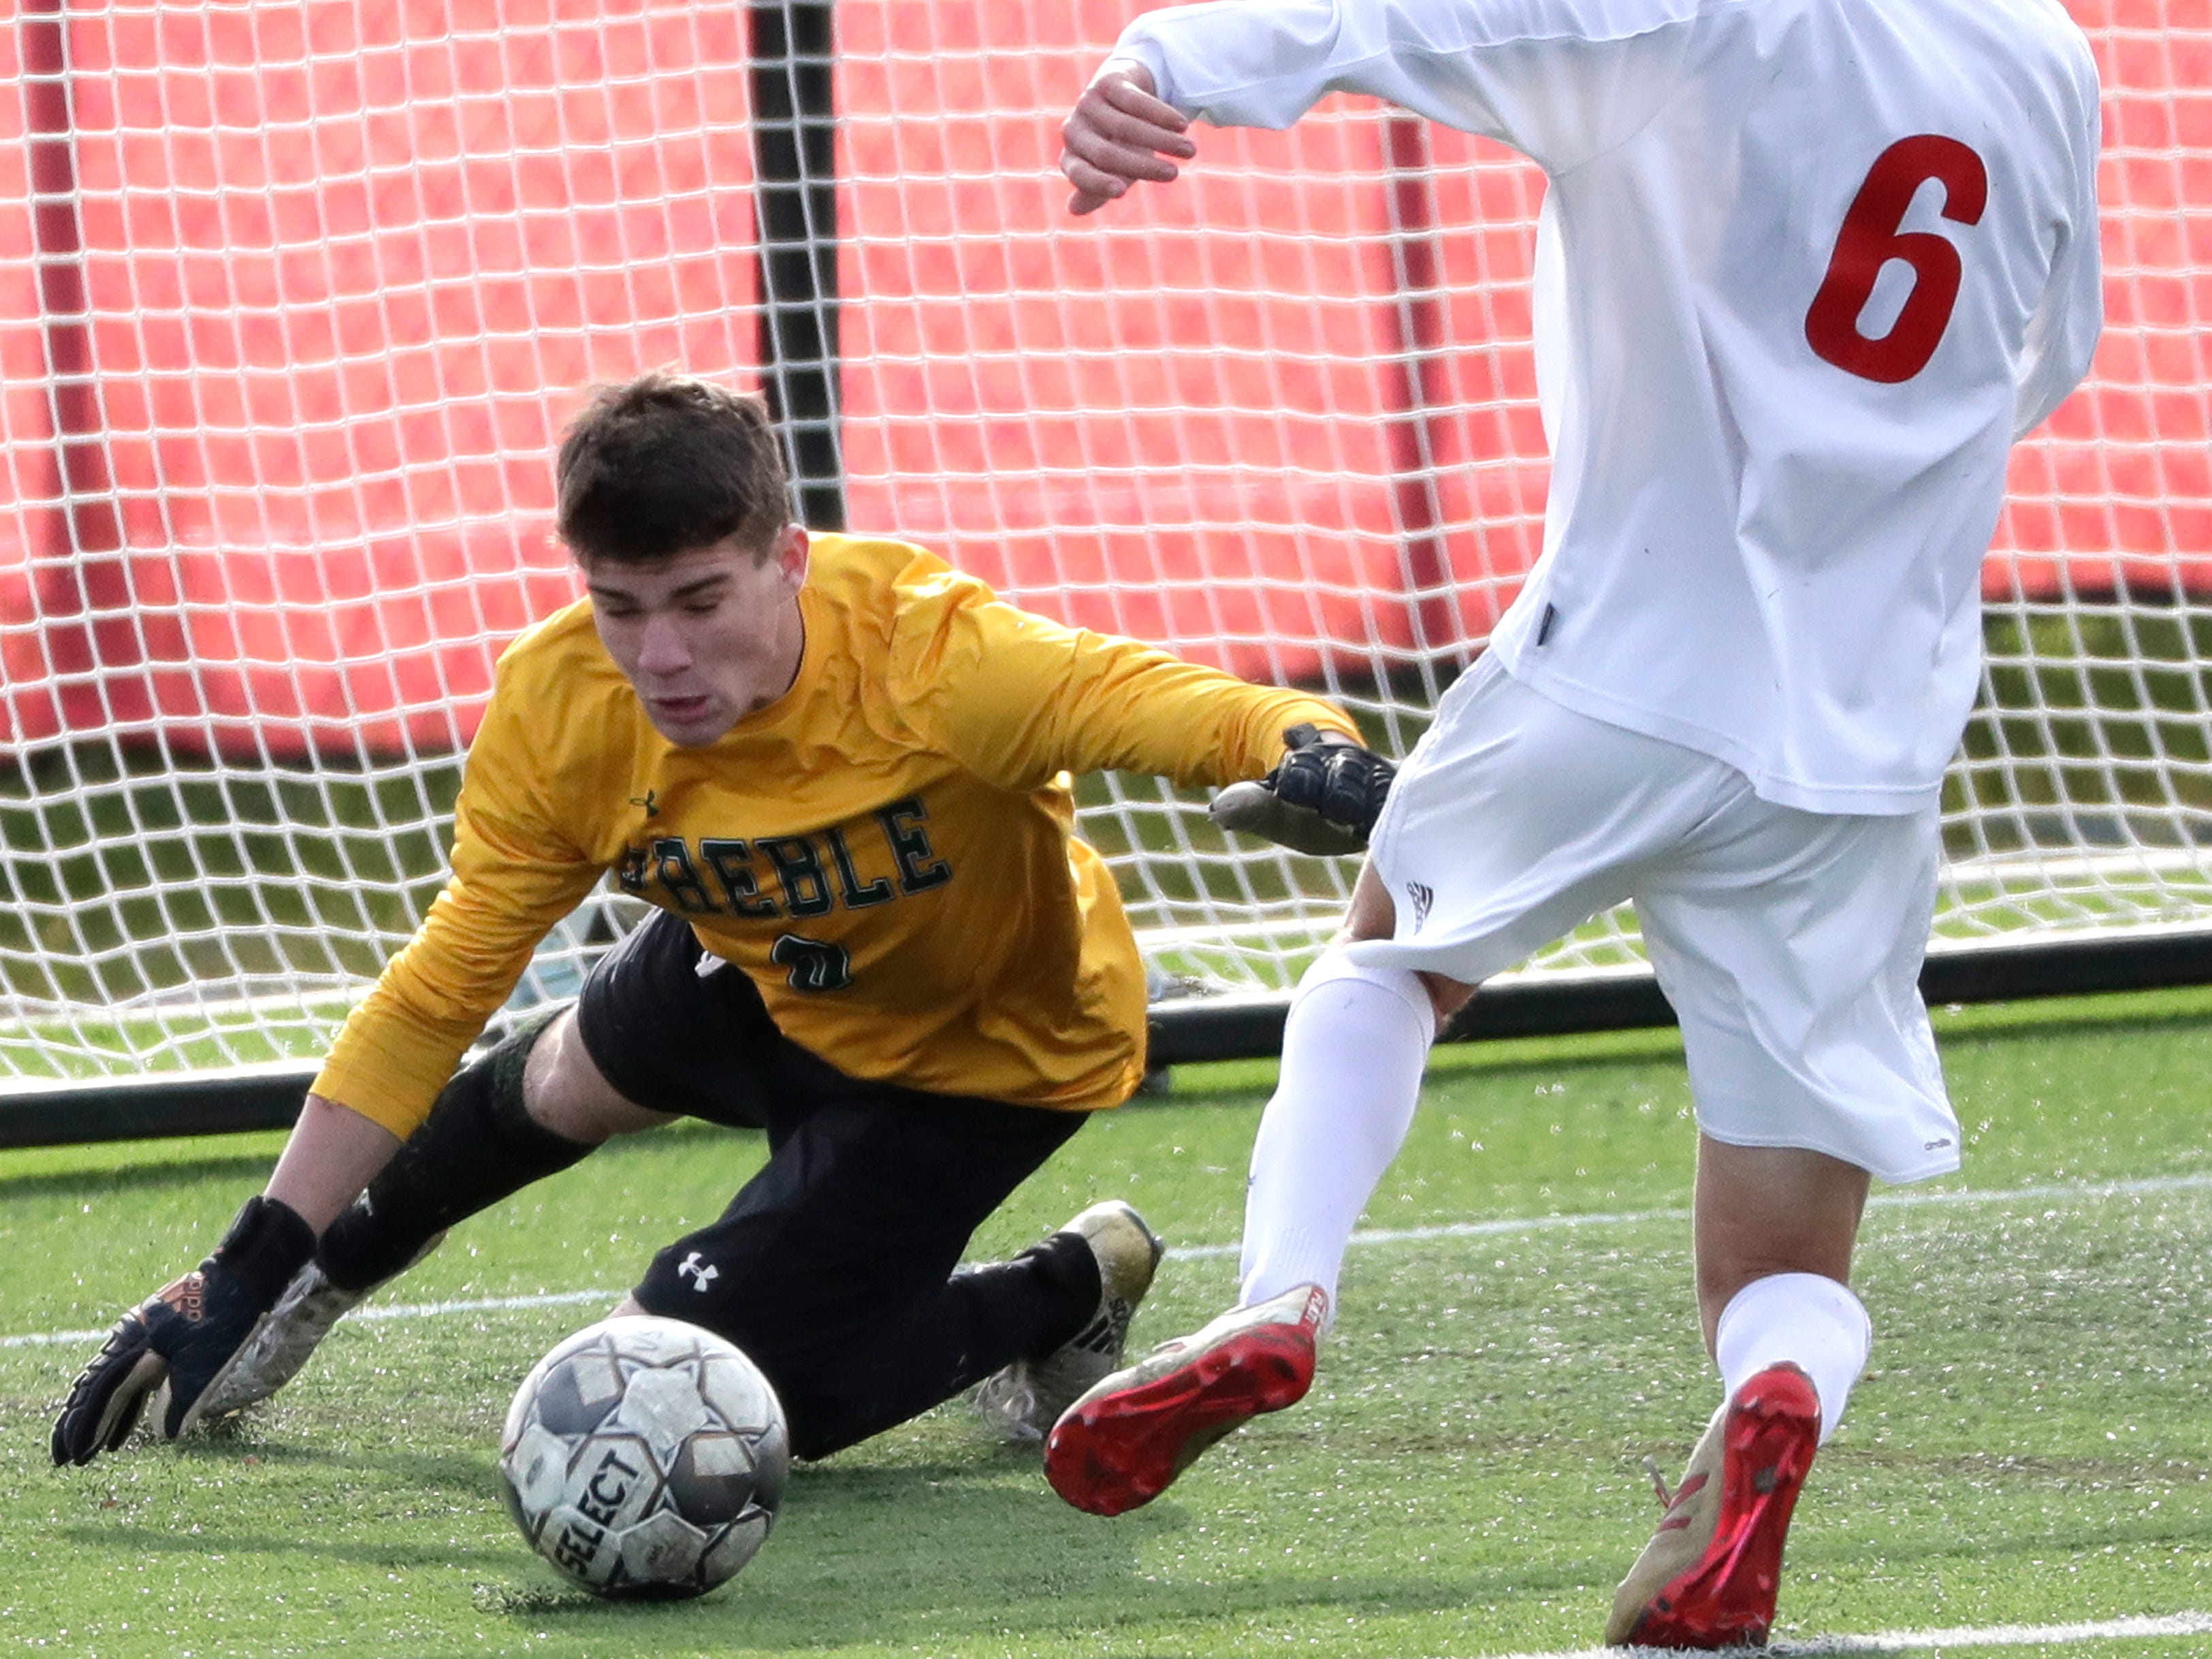 Green Bay Preble High School's goalie Noah Conard (0) prevents a shot on goal attempt against Hamilton High School's Bennett Pauls (6) during their WIAA Division 1 state semifinal boys soccer game Friday, November 2, 2018, at Uihlein Soccer Park in Milwaukee, Wis.